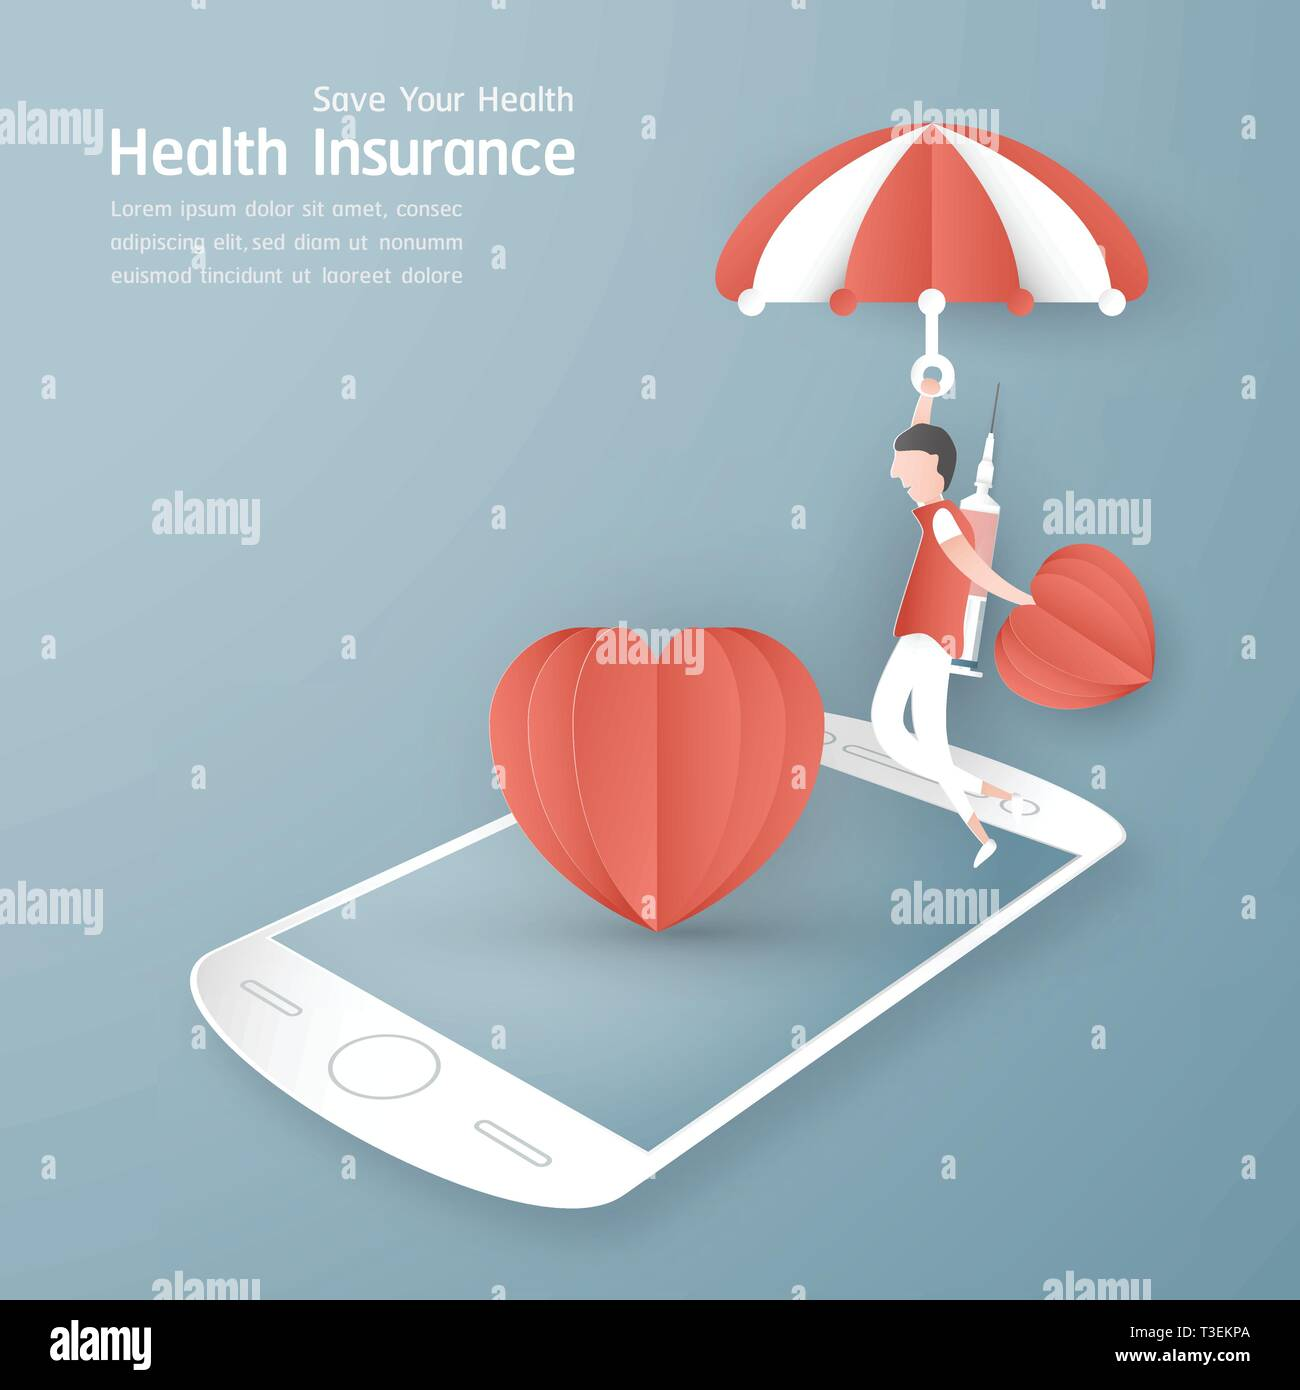 Vector illustration in concept of health insurance. Template design is on pastel blue background for cover, web banner, poster, slide presentation. Ar - Stock Image